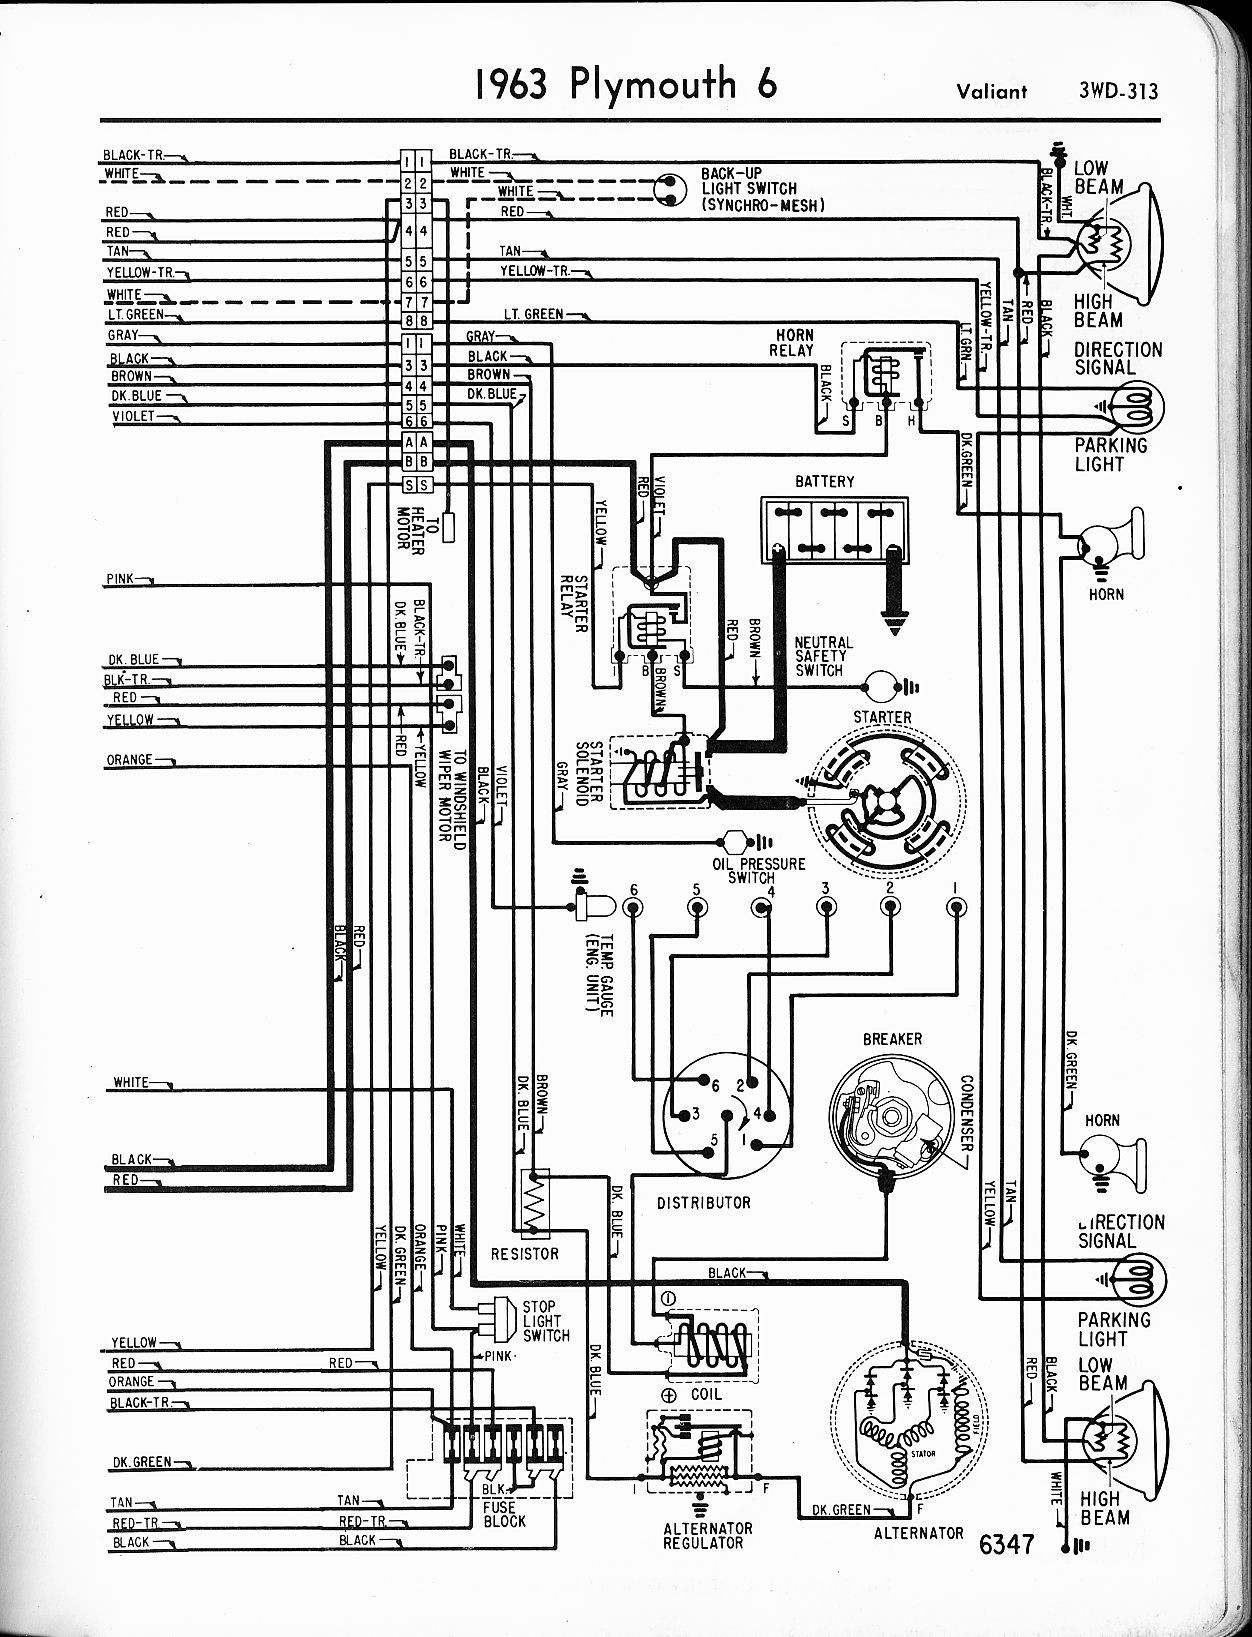 Westec Touchtronic Wiring Diagram